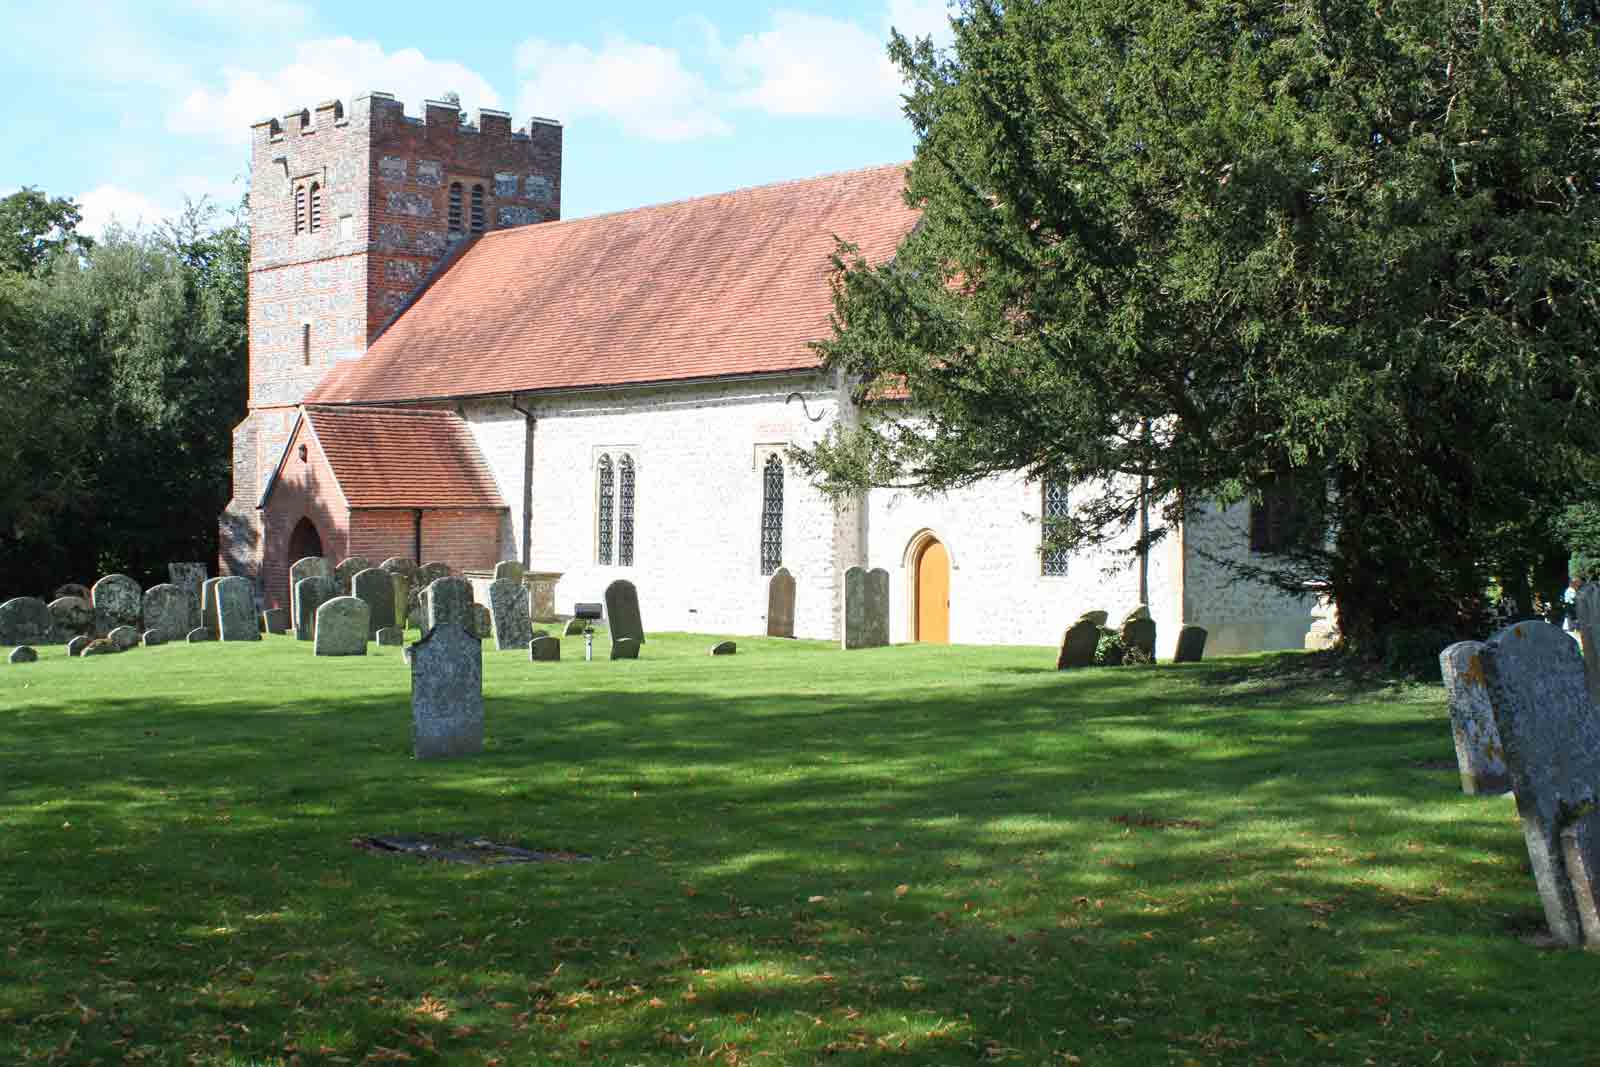 st-andrews-church-boxford-14-sept-2011-1600